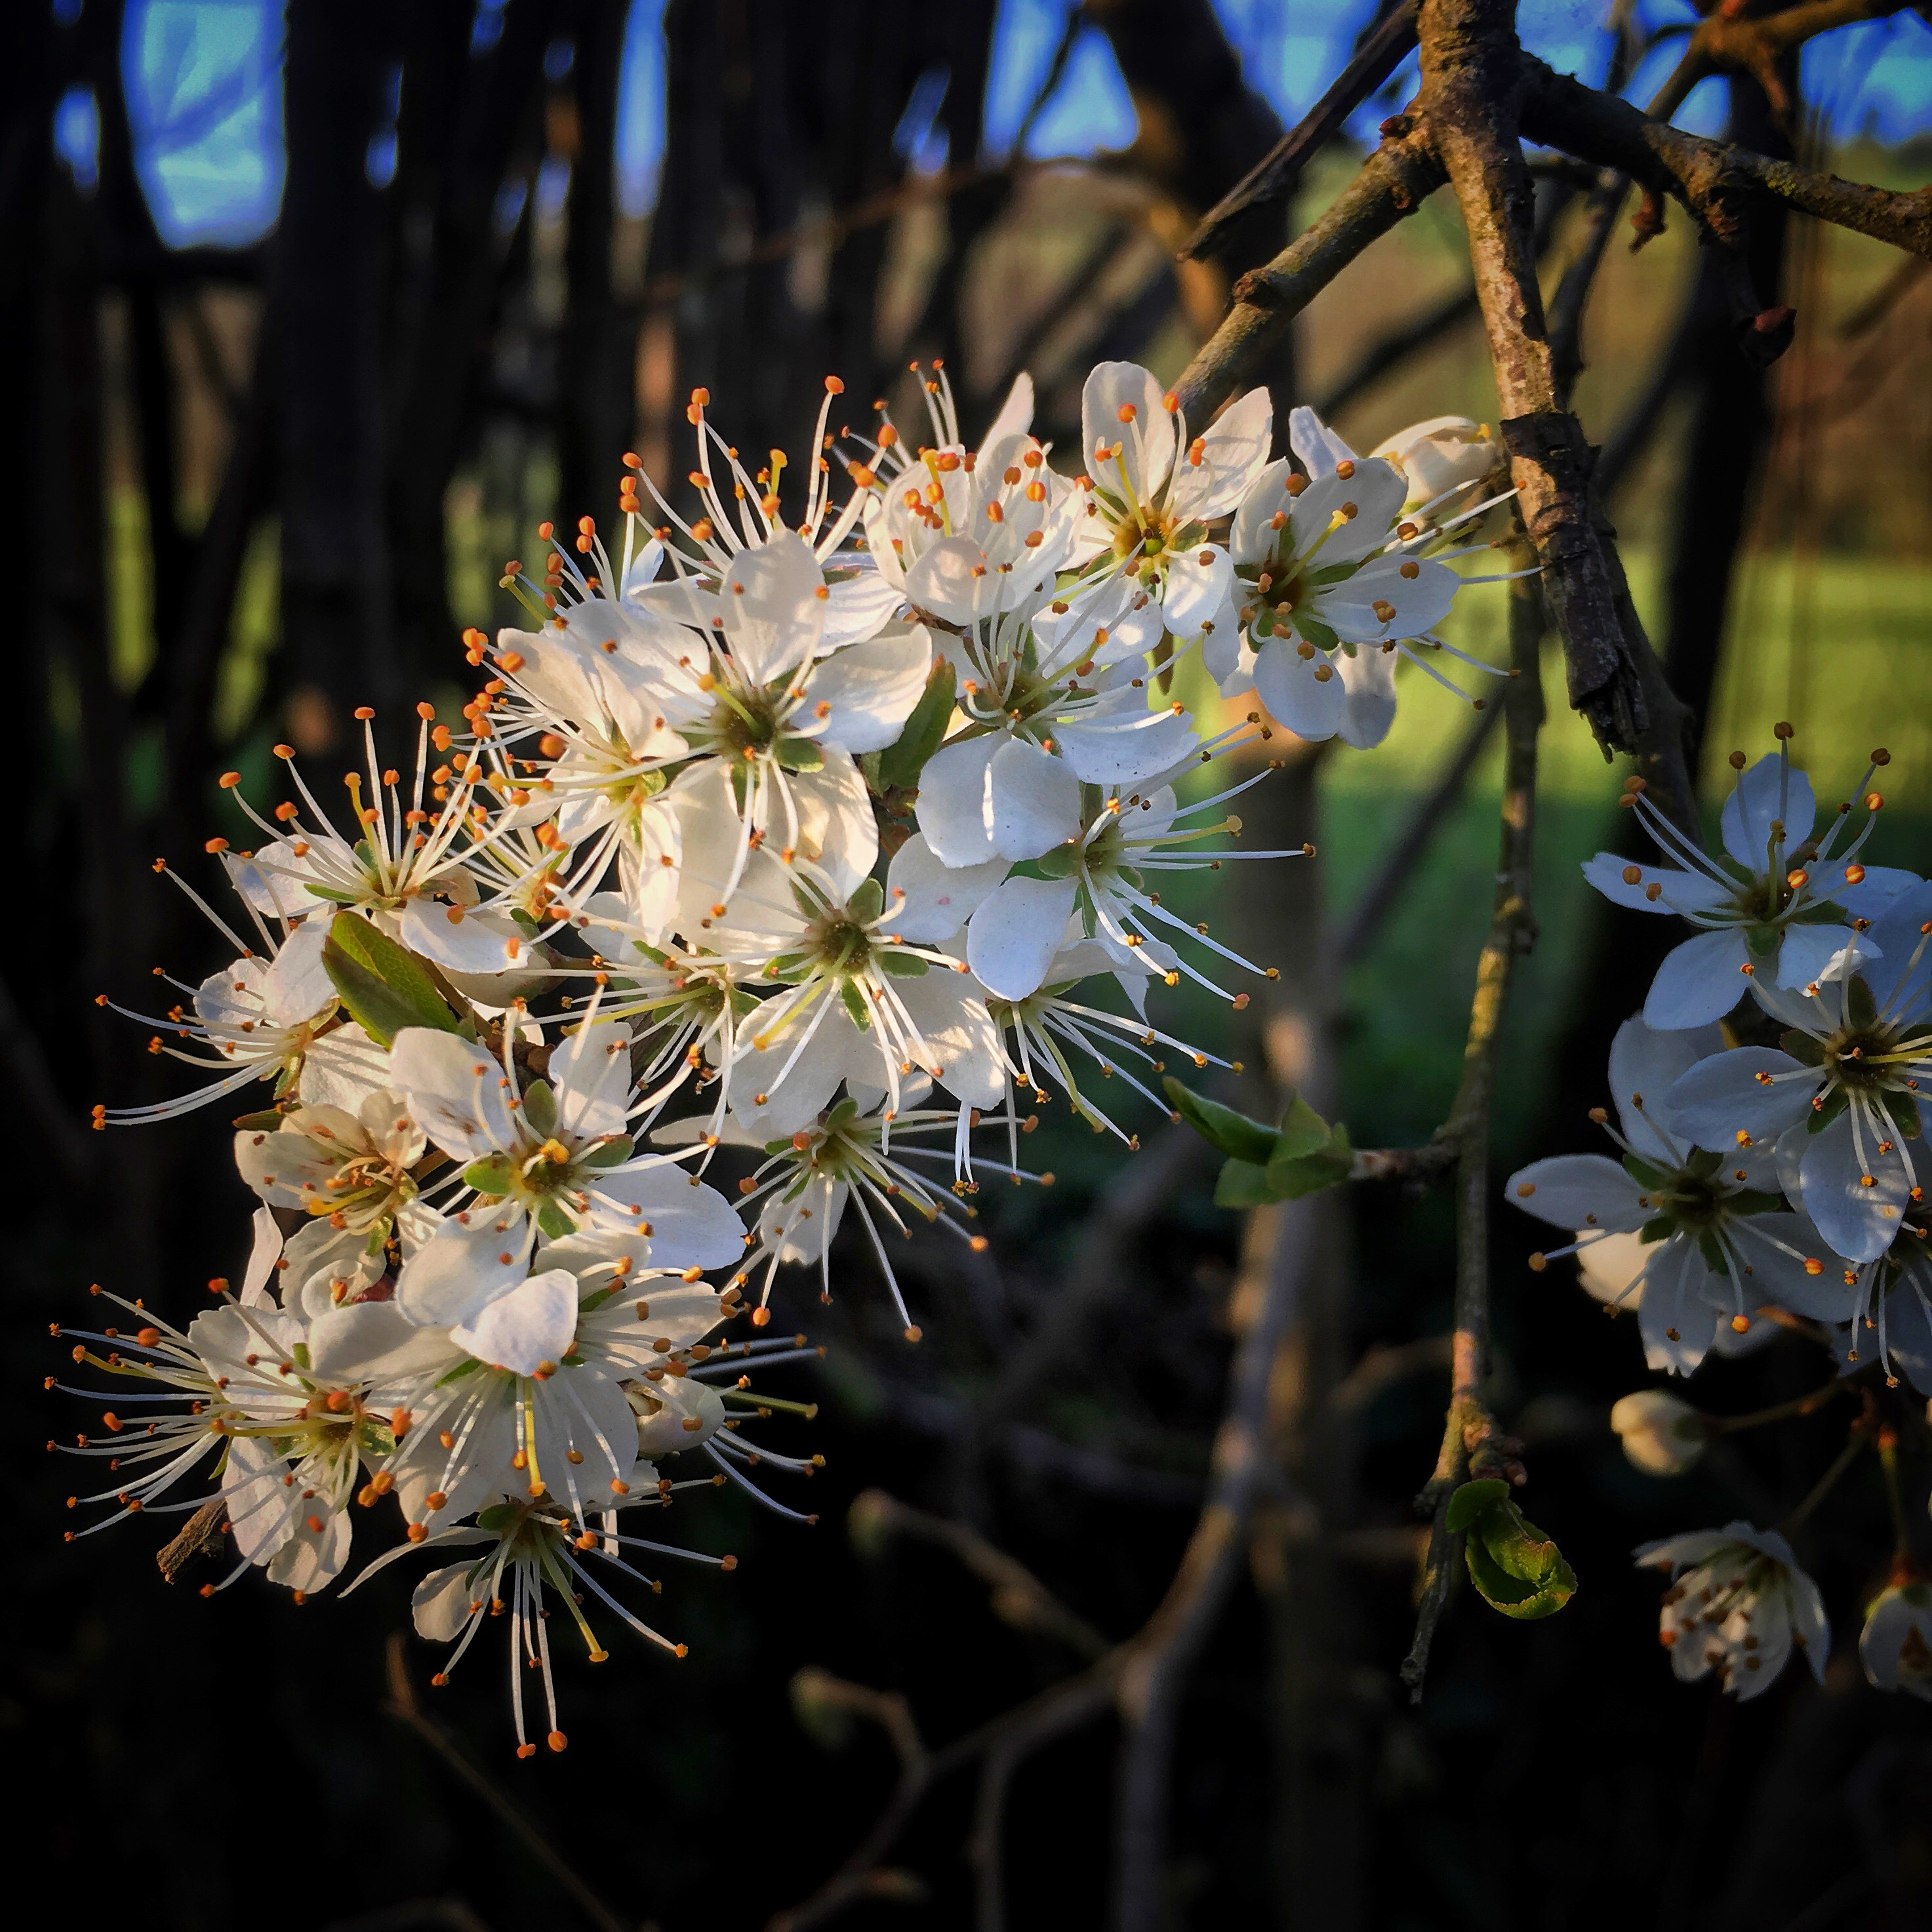 Sprig of Blackthorn Blossom